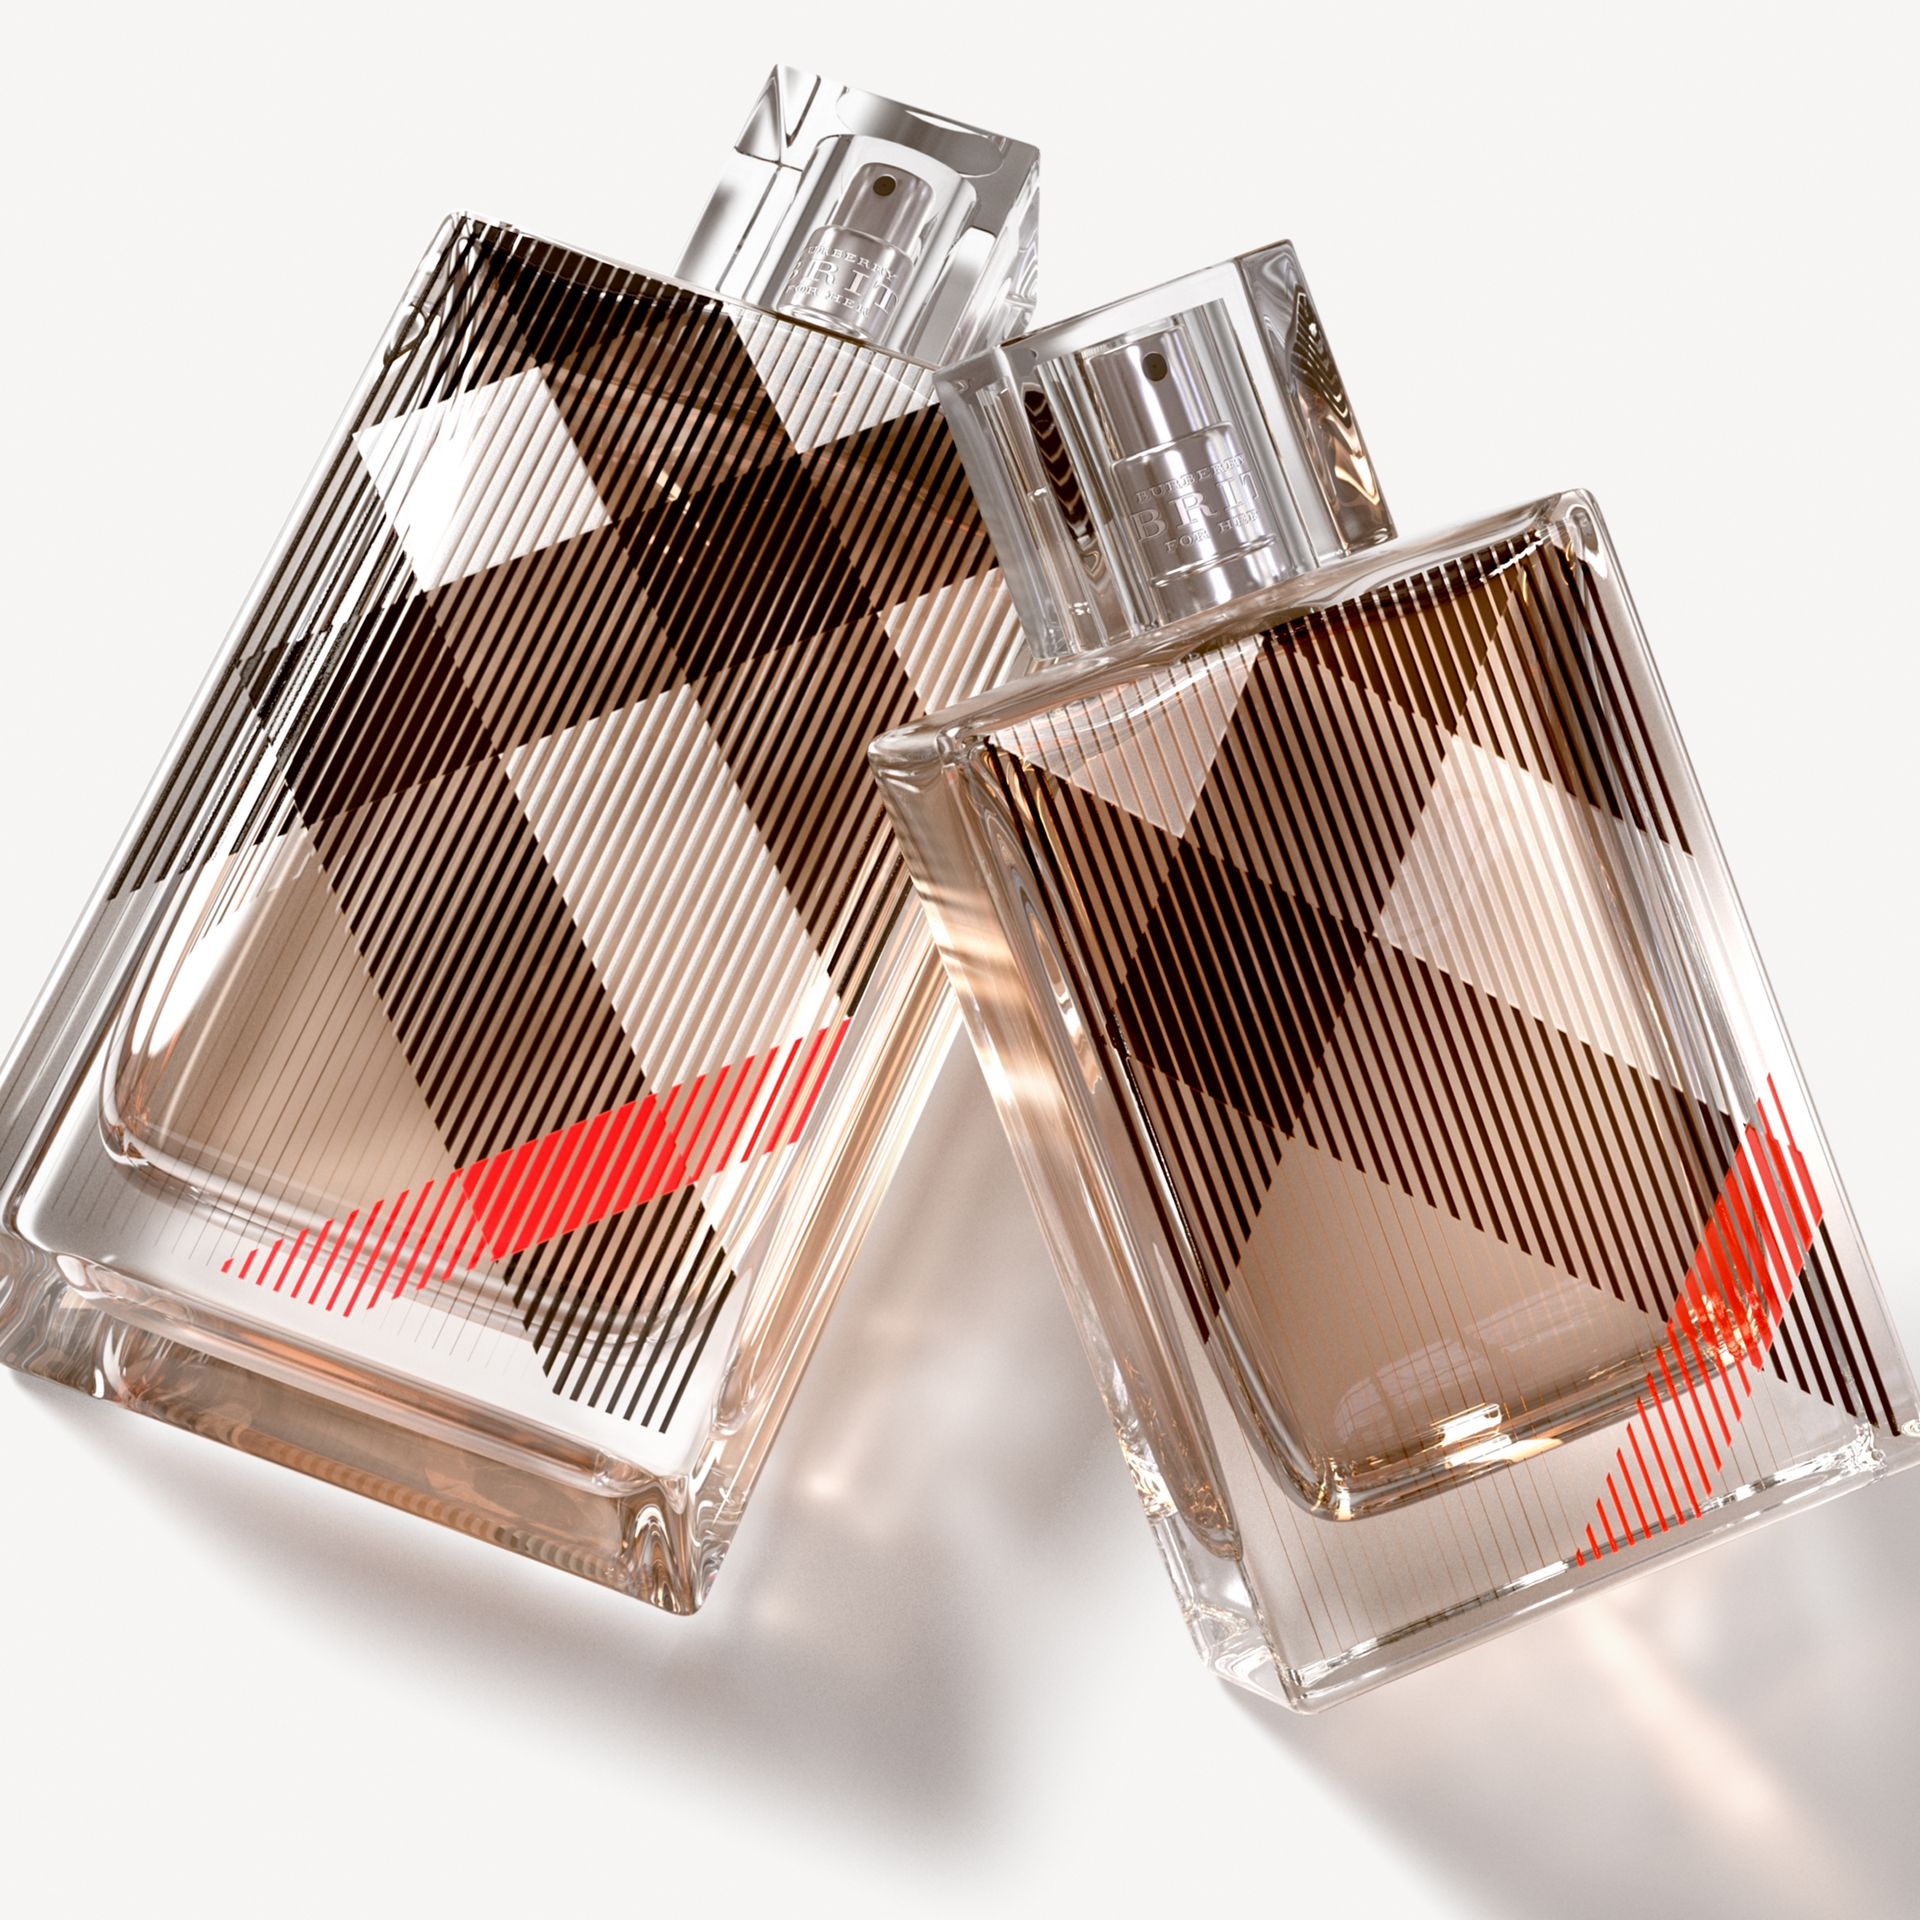 Burberry Brit For Her Eau de Parfum 100 ml - immagine della galleria 2